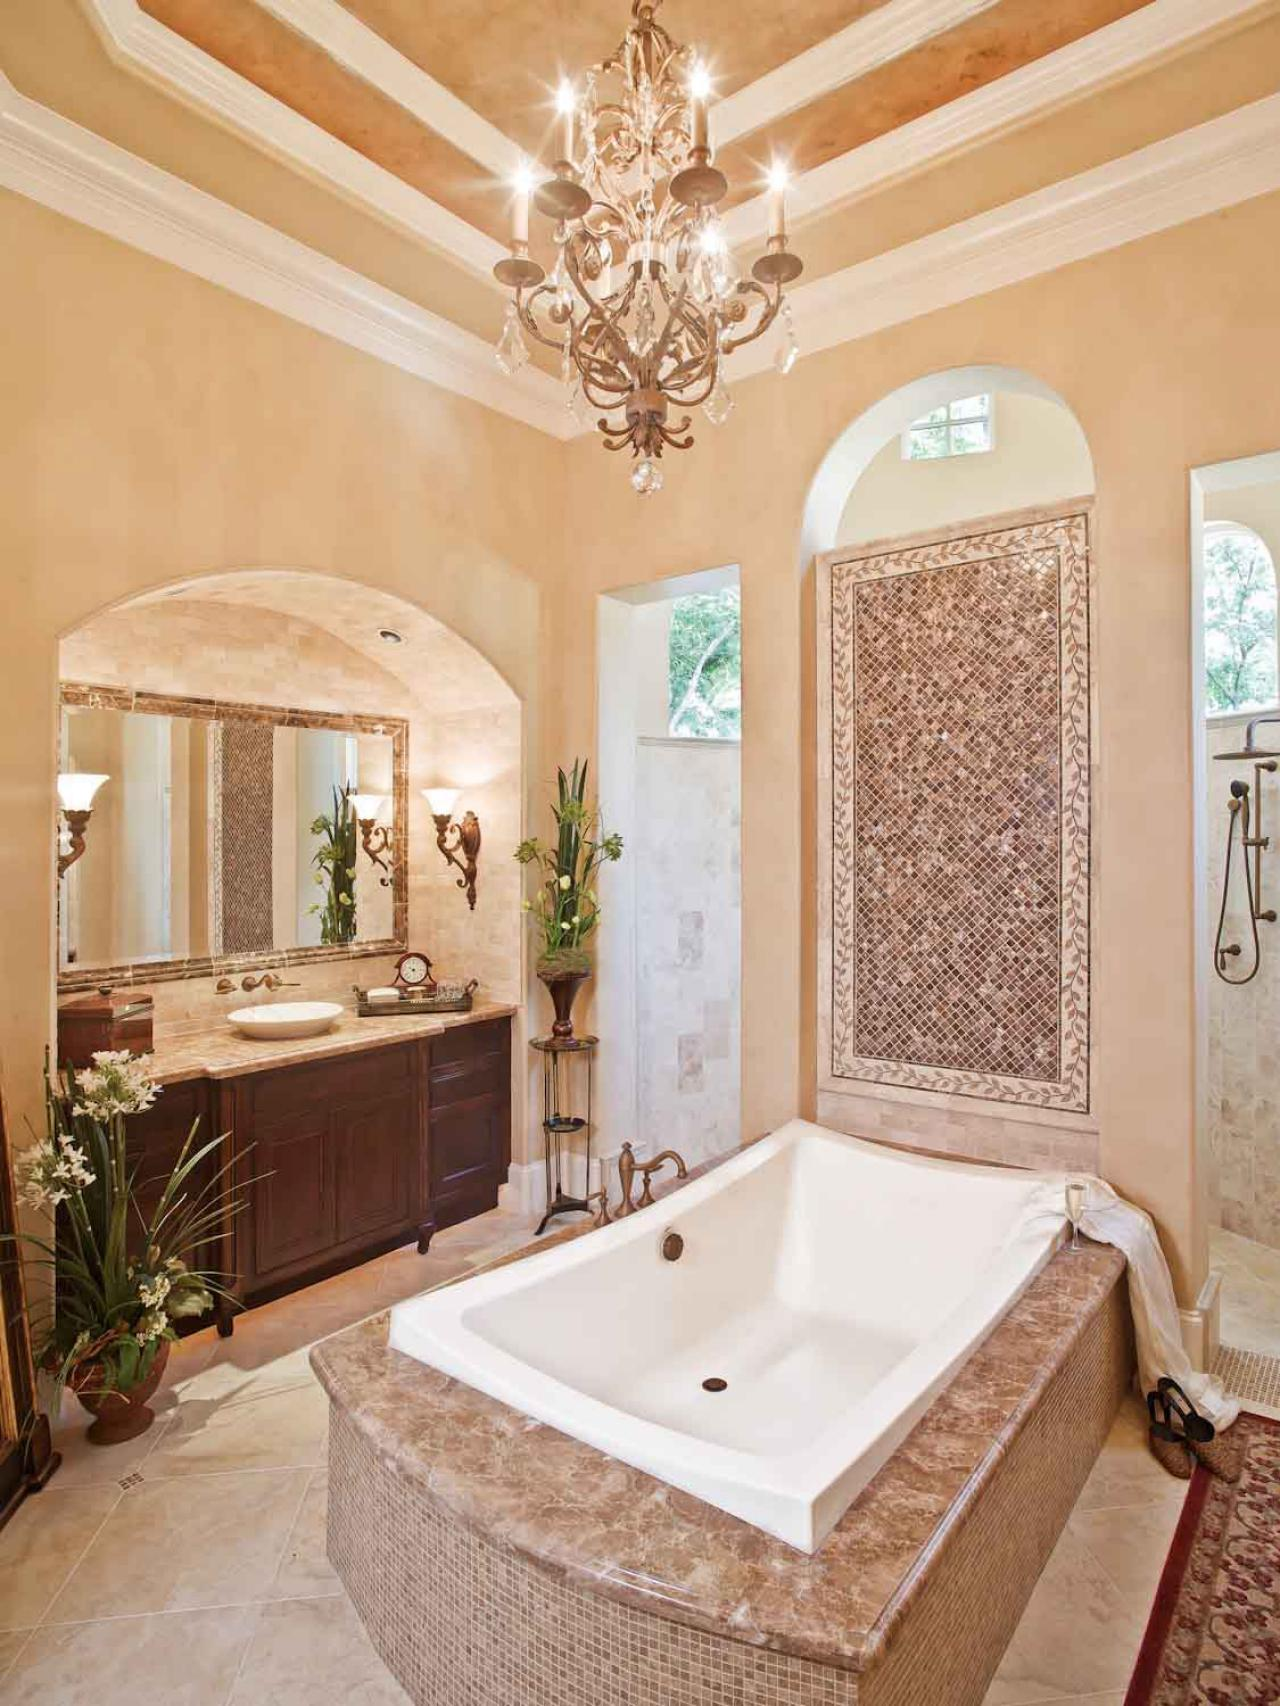 20 luxurious bathrooms with elegant chandelier lighting Romantic bathroom design ideas